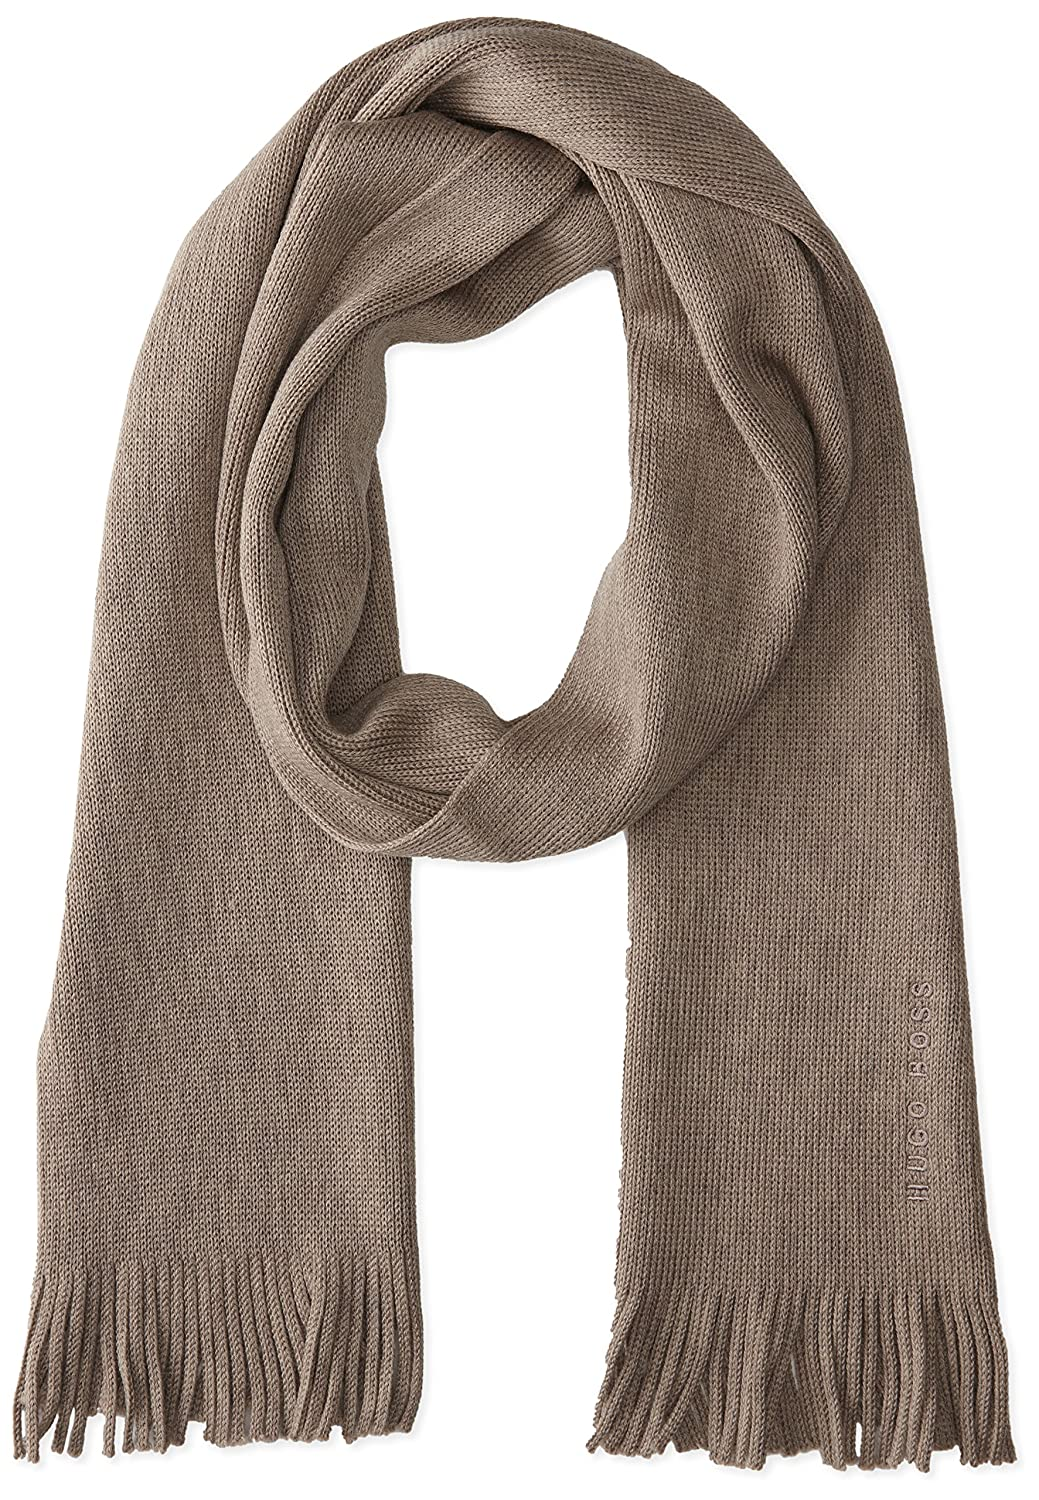 BOSS Hugo Boss Men's Albas Scarf, Taupe, One Size 50138618